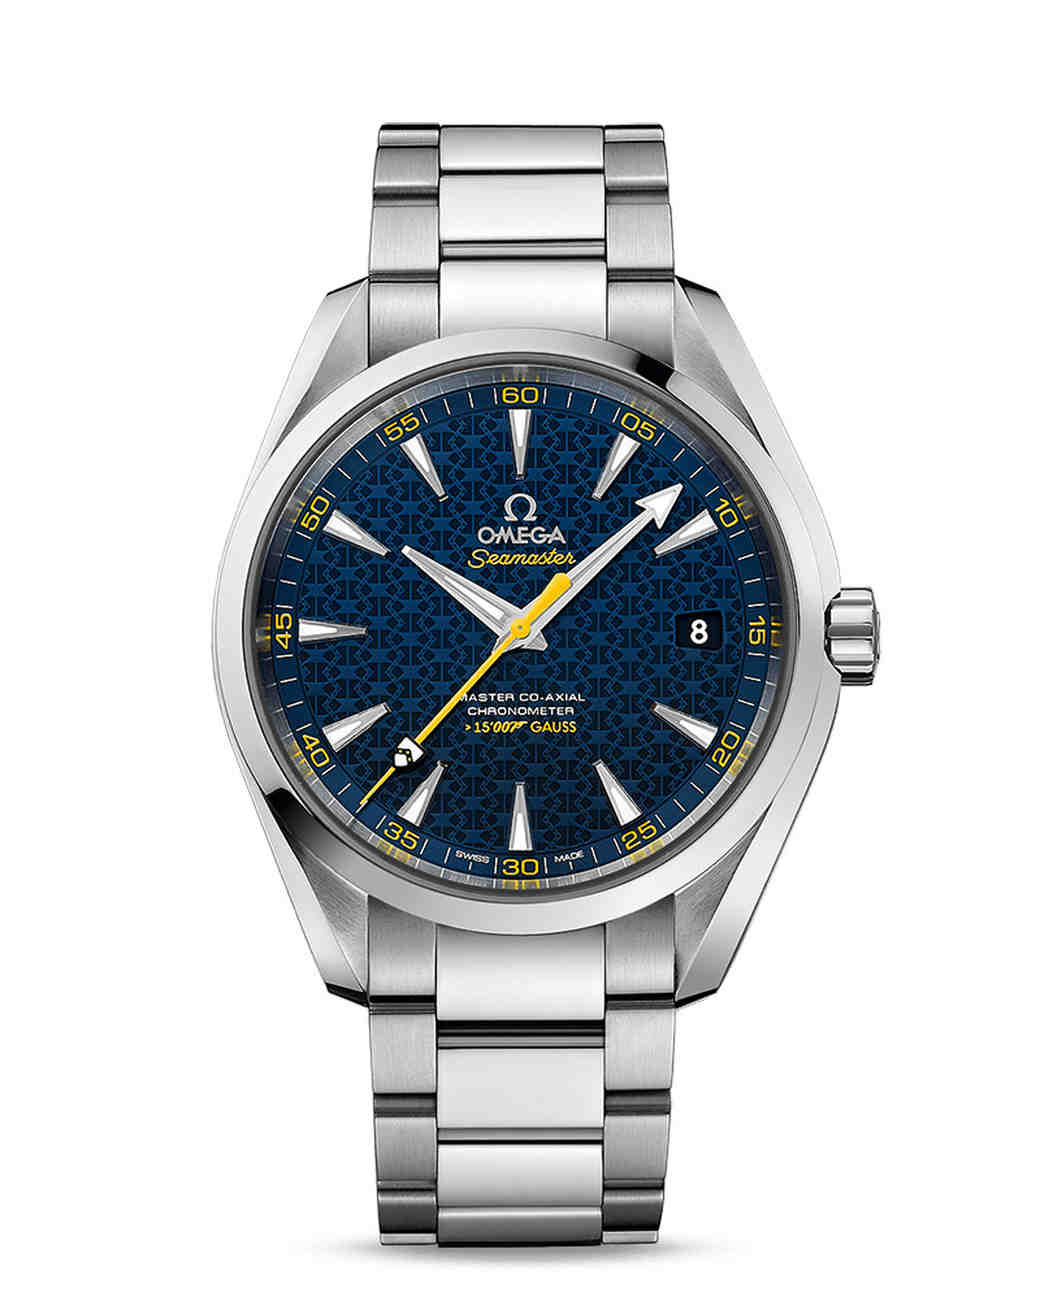 Omega Seamaster Aqua Terra Master Co-Axial Watch